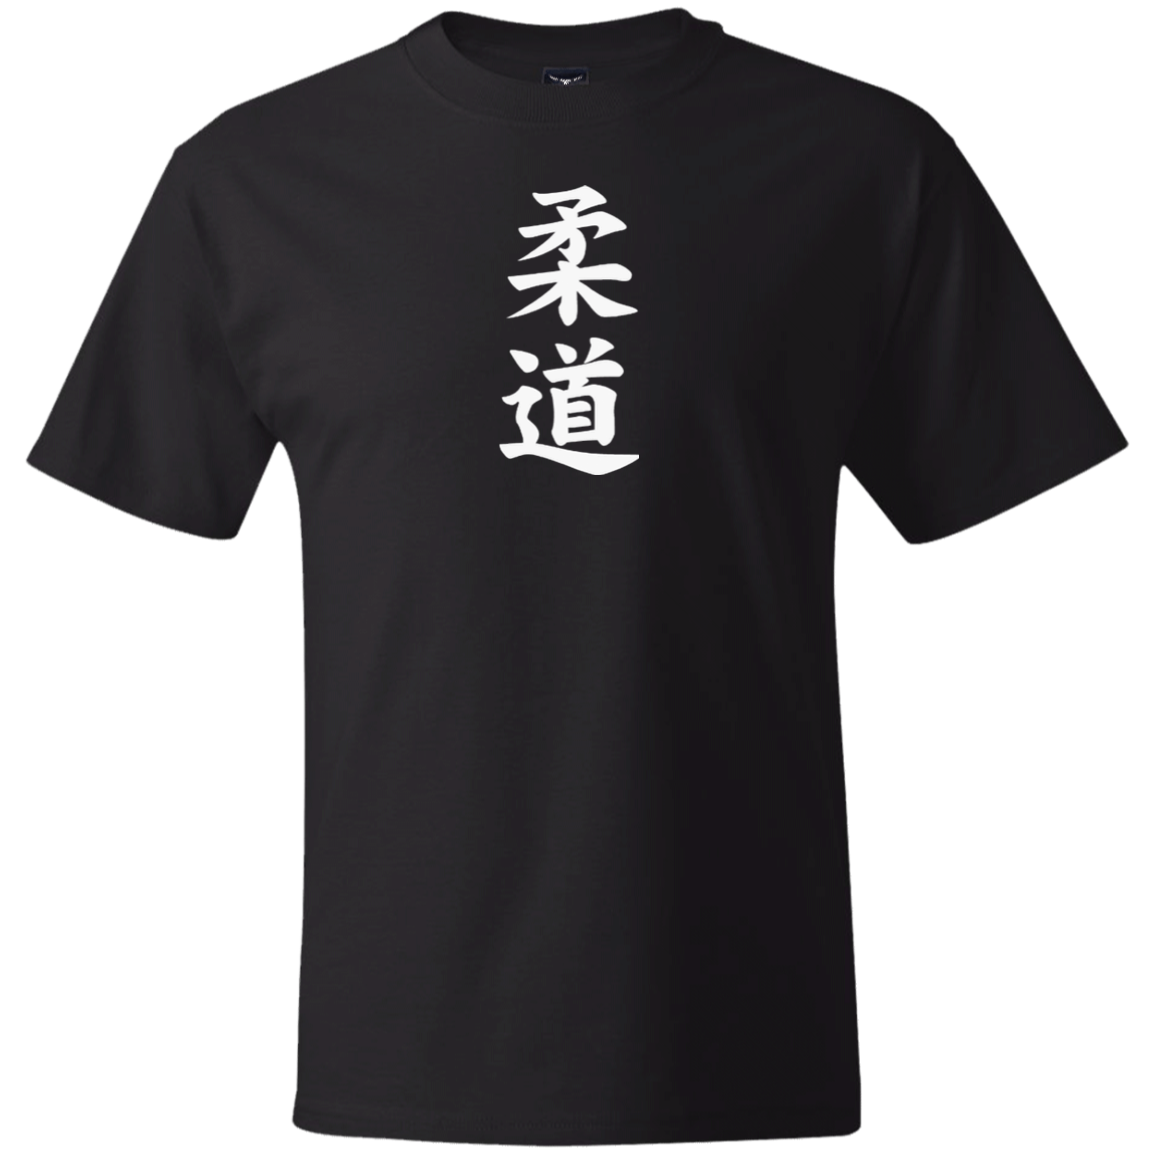 Judo Kanji (White) Under Gi T-Shirt - Martial Arts, Brazilian Jiujitsu, Karate, Muay Thai Shirts